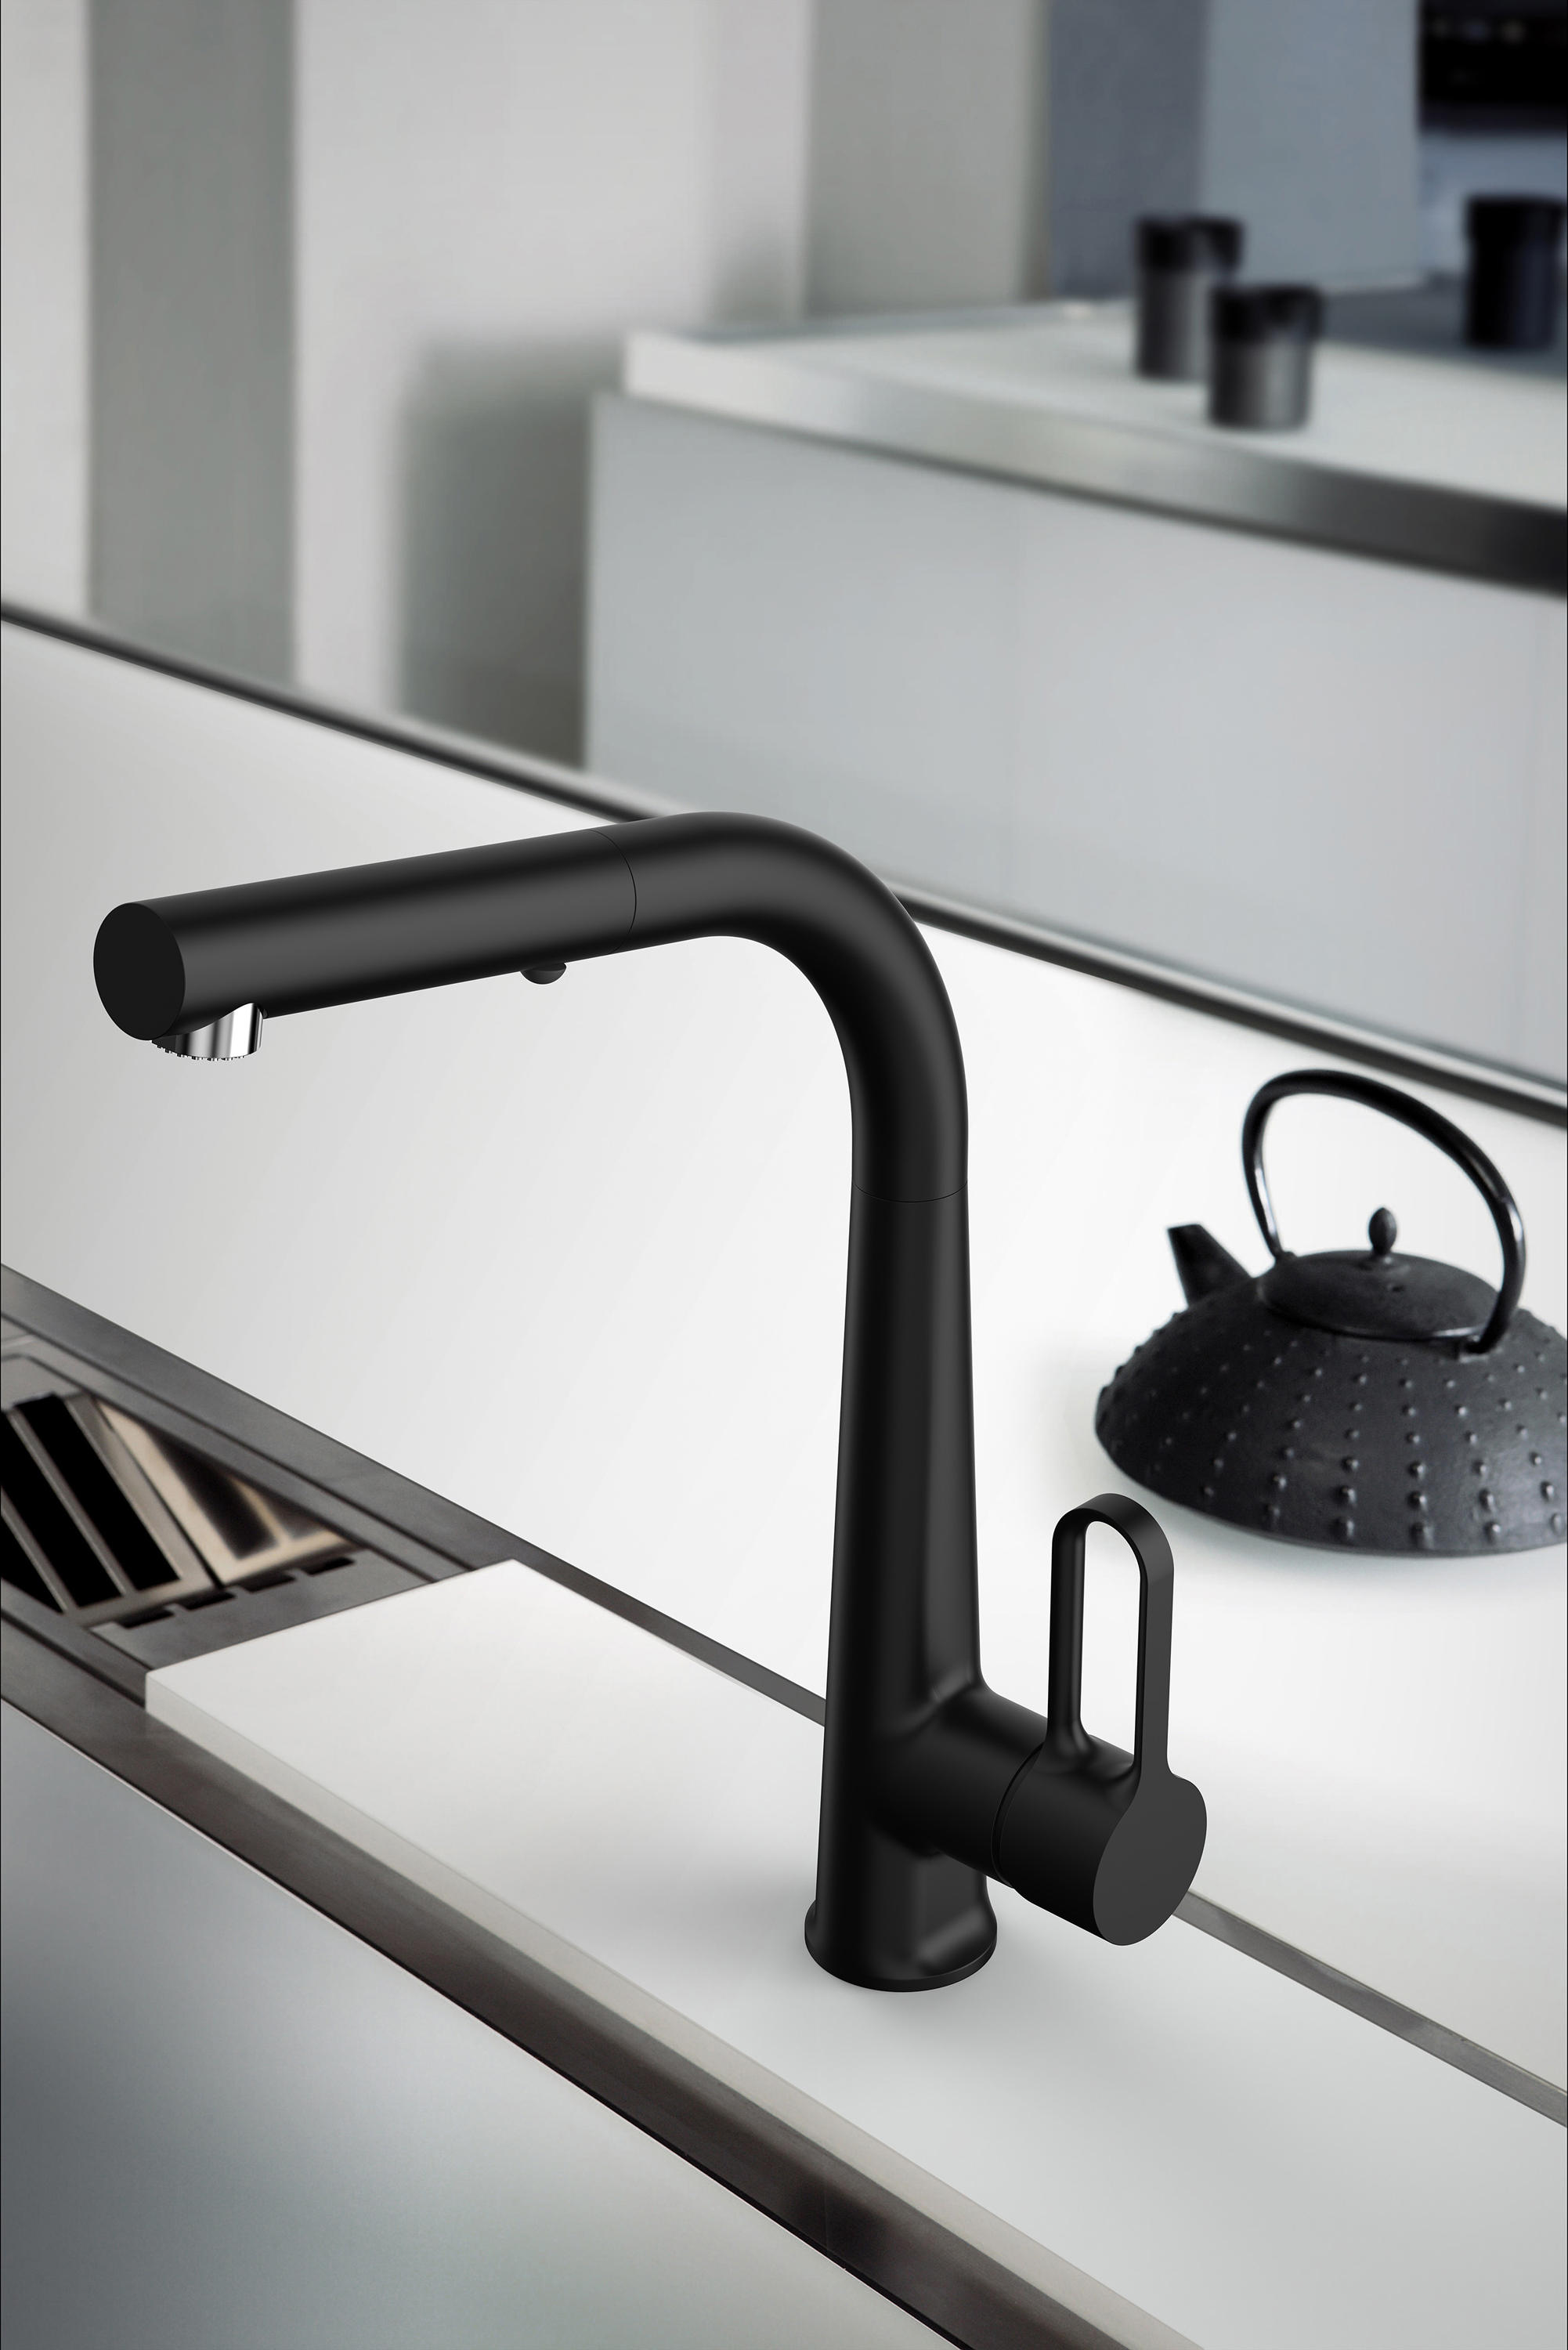 Skinny Black Kitchen Taps From Fima Carlo Frattini